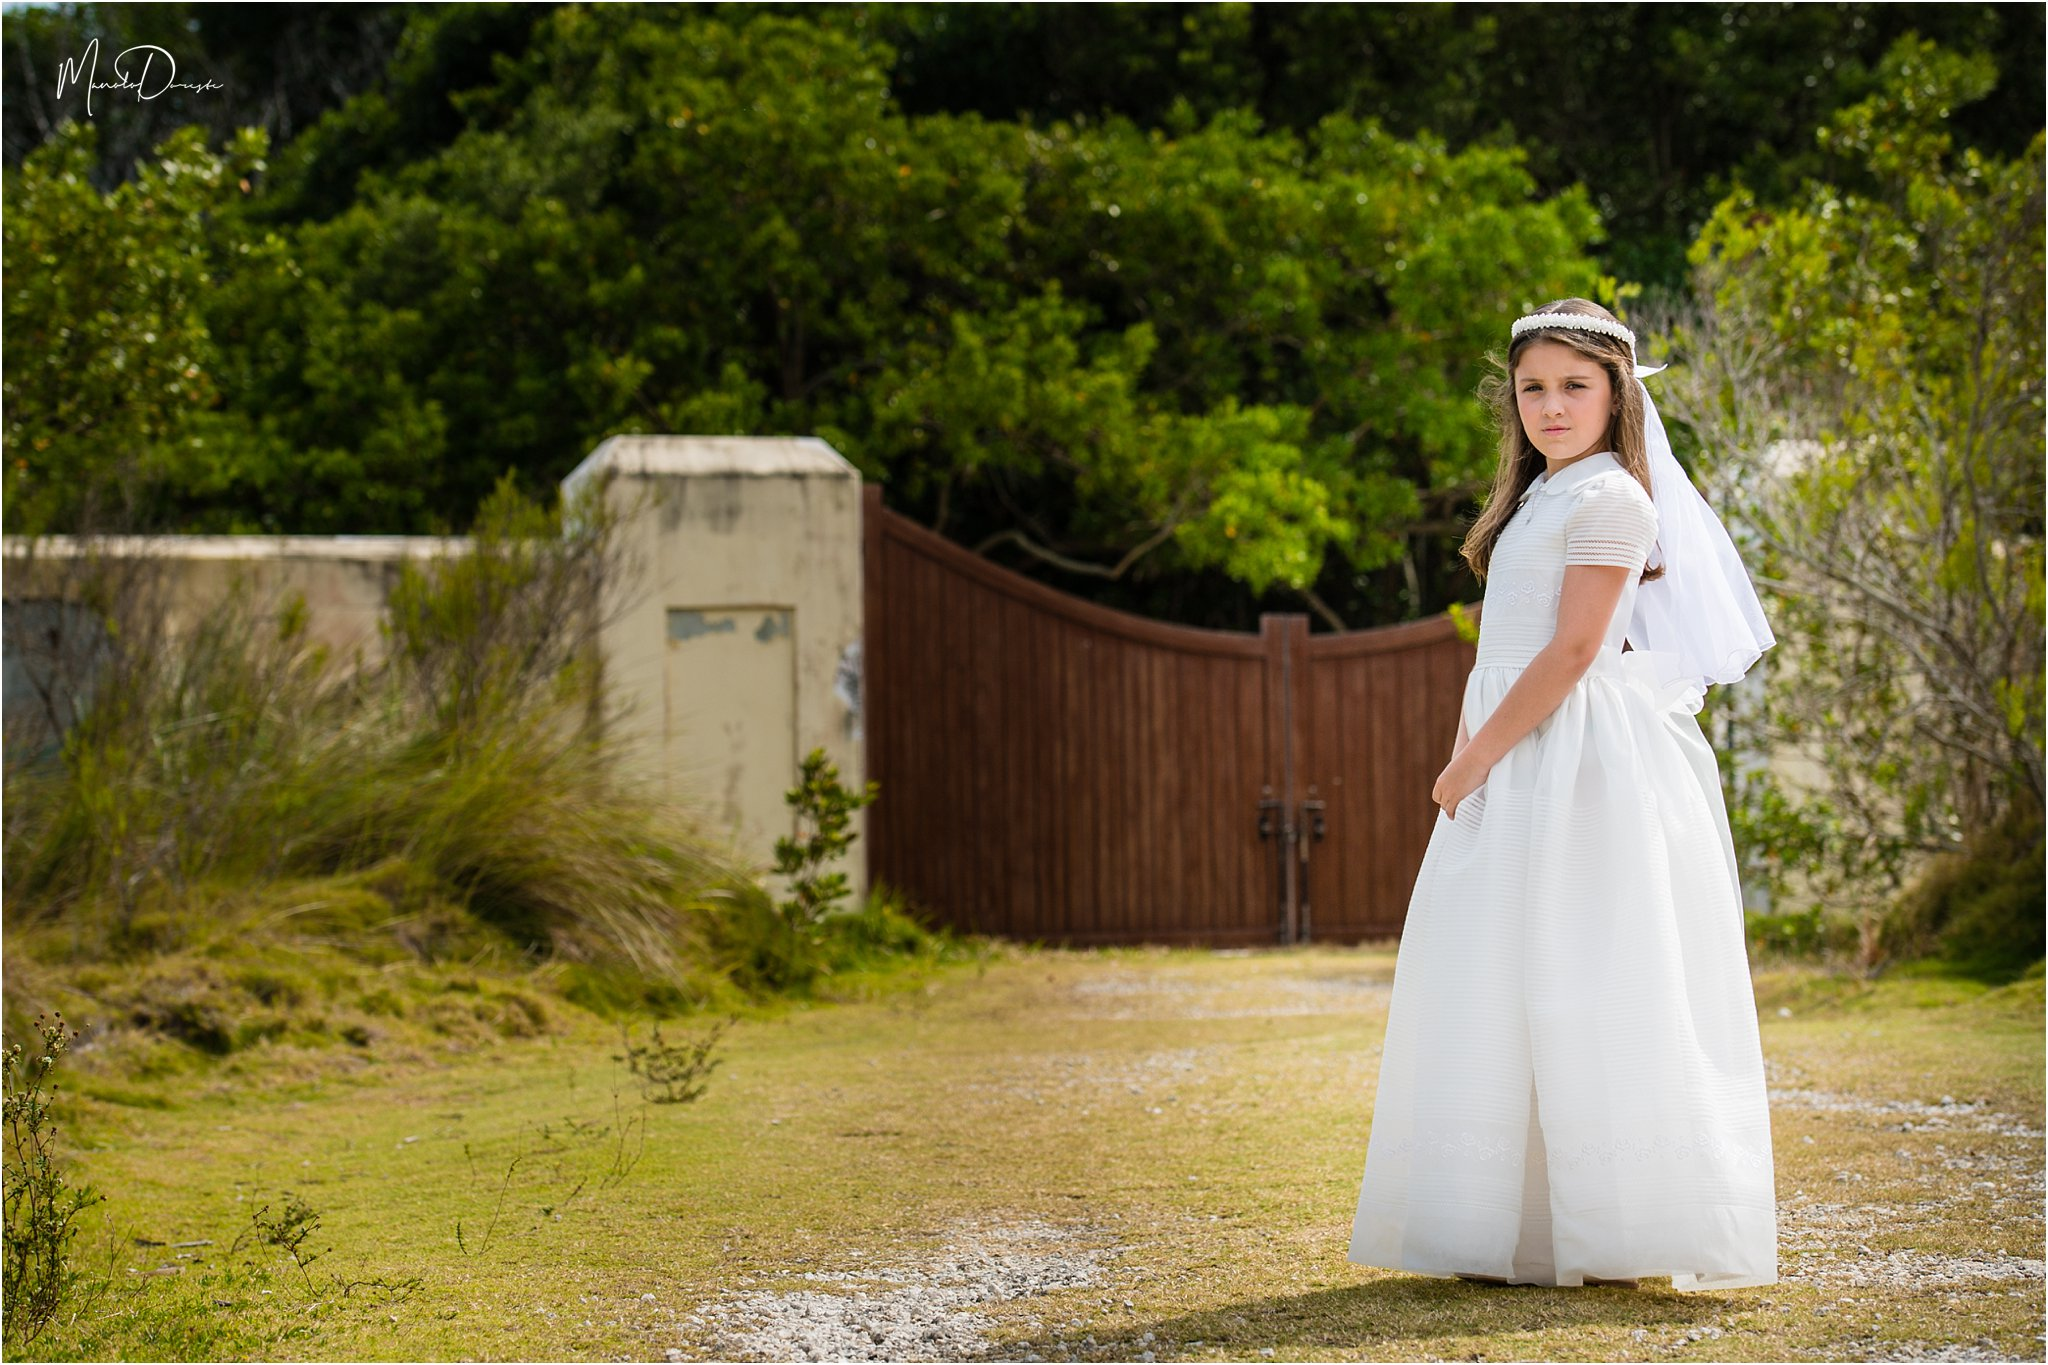 0619_ManoloDoreste_InFocusStudios_Wedding_Family_Photography_Miami_MiamiPhotographer.jpg